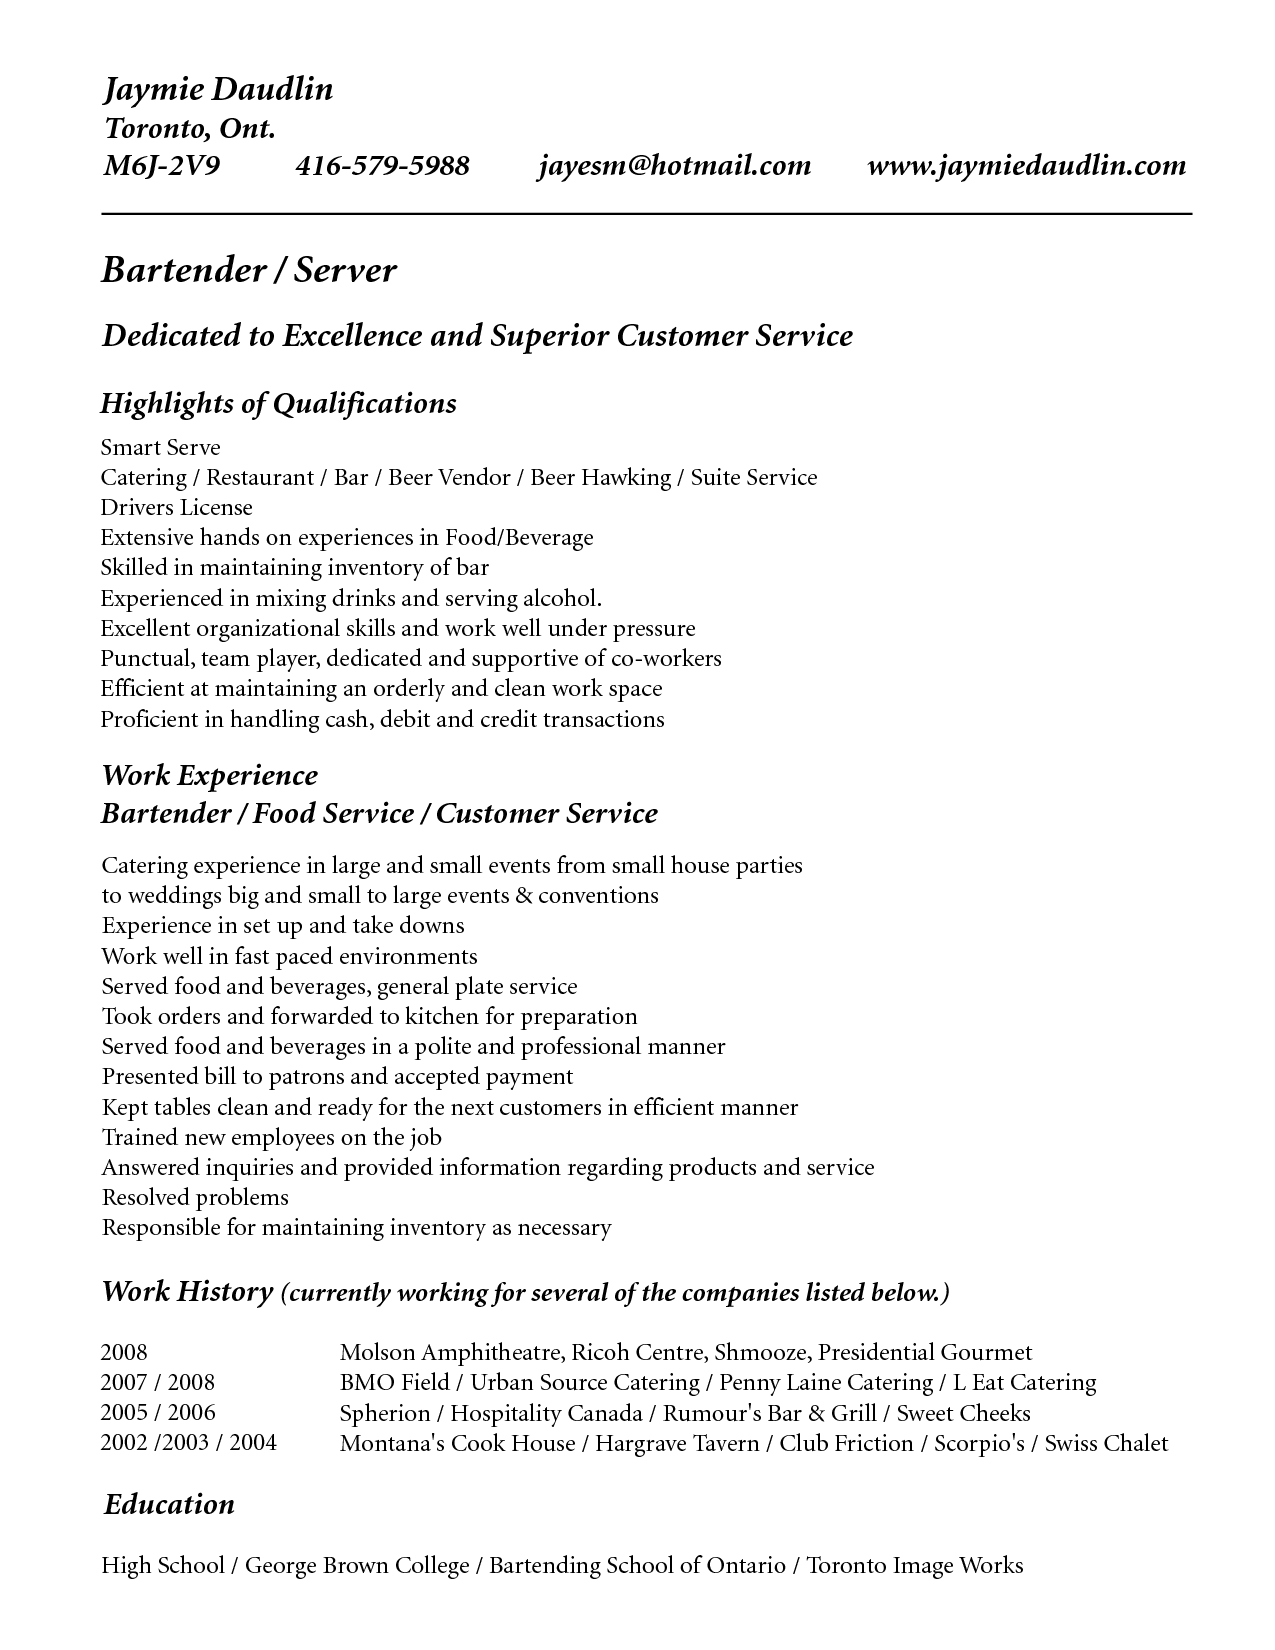 we already knew that we must put our educational information to any resume including the bartenders resume when you make your bartender resume - Server Bartender Resume